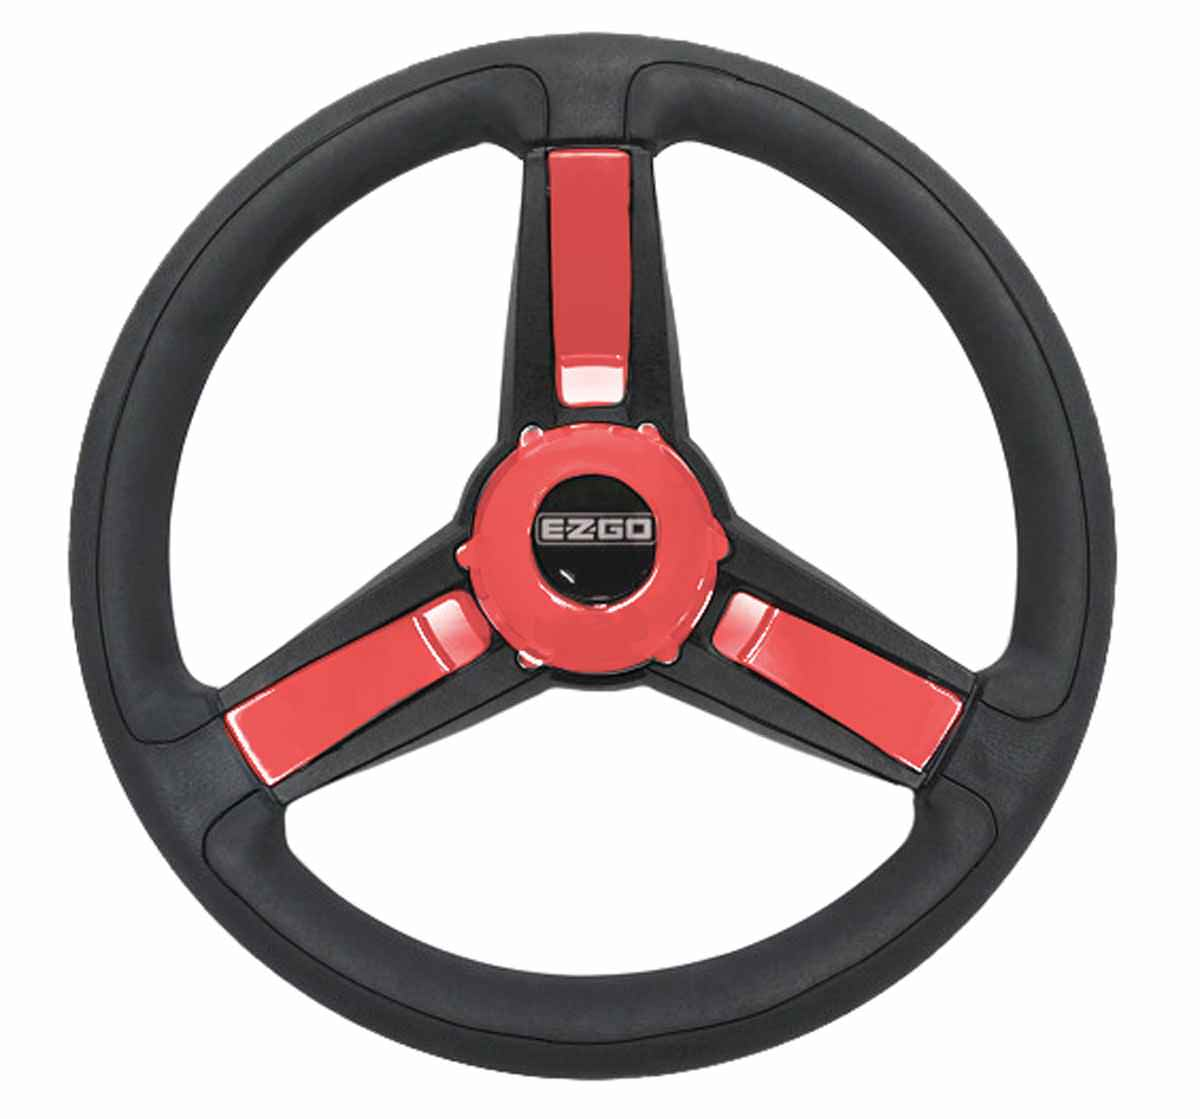 Giazza Red Steering Wheel For EZGO Golf Carts